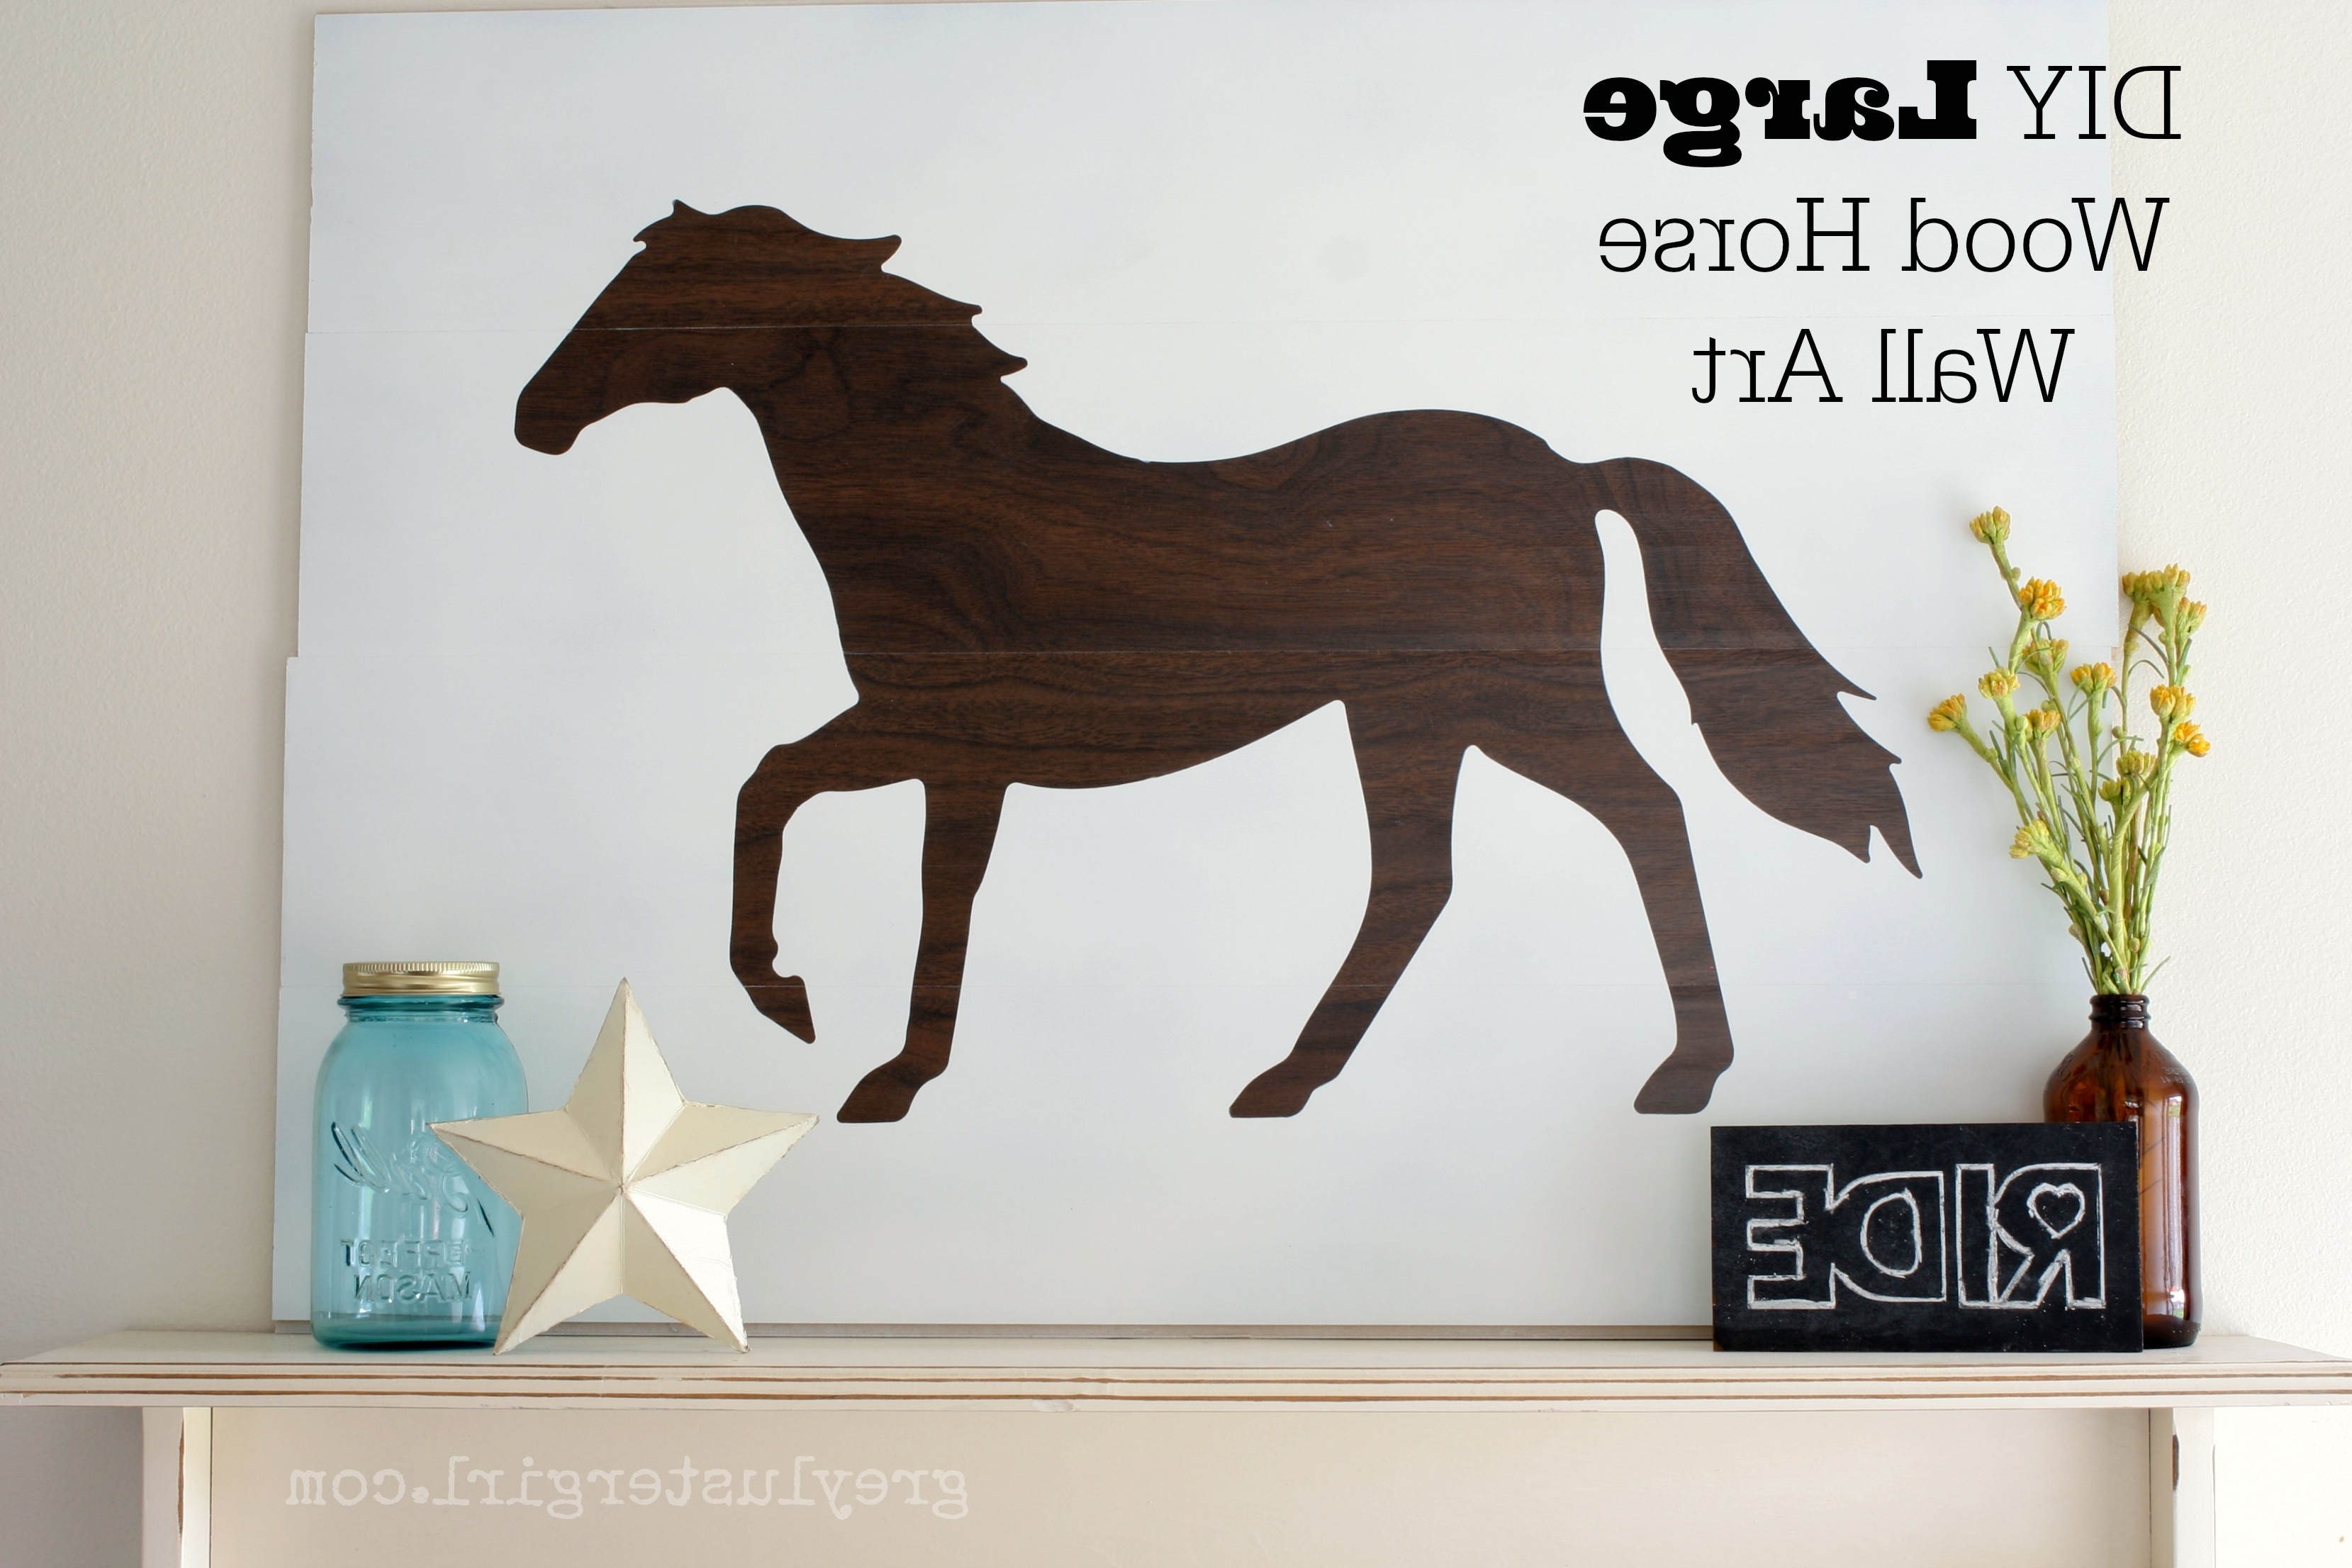 Fabric Animal Silhouette Wall Art Inside Current Large Wood Horse Wall Art And Silhouette Portrait Giveaway – (View 4 of 15)